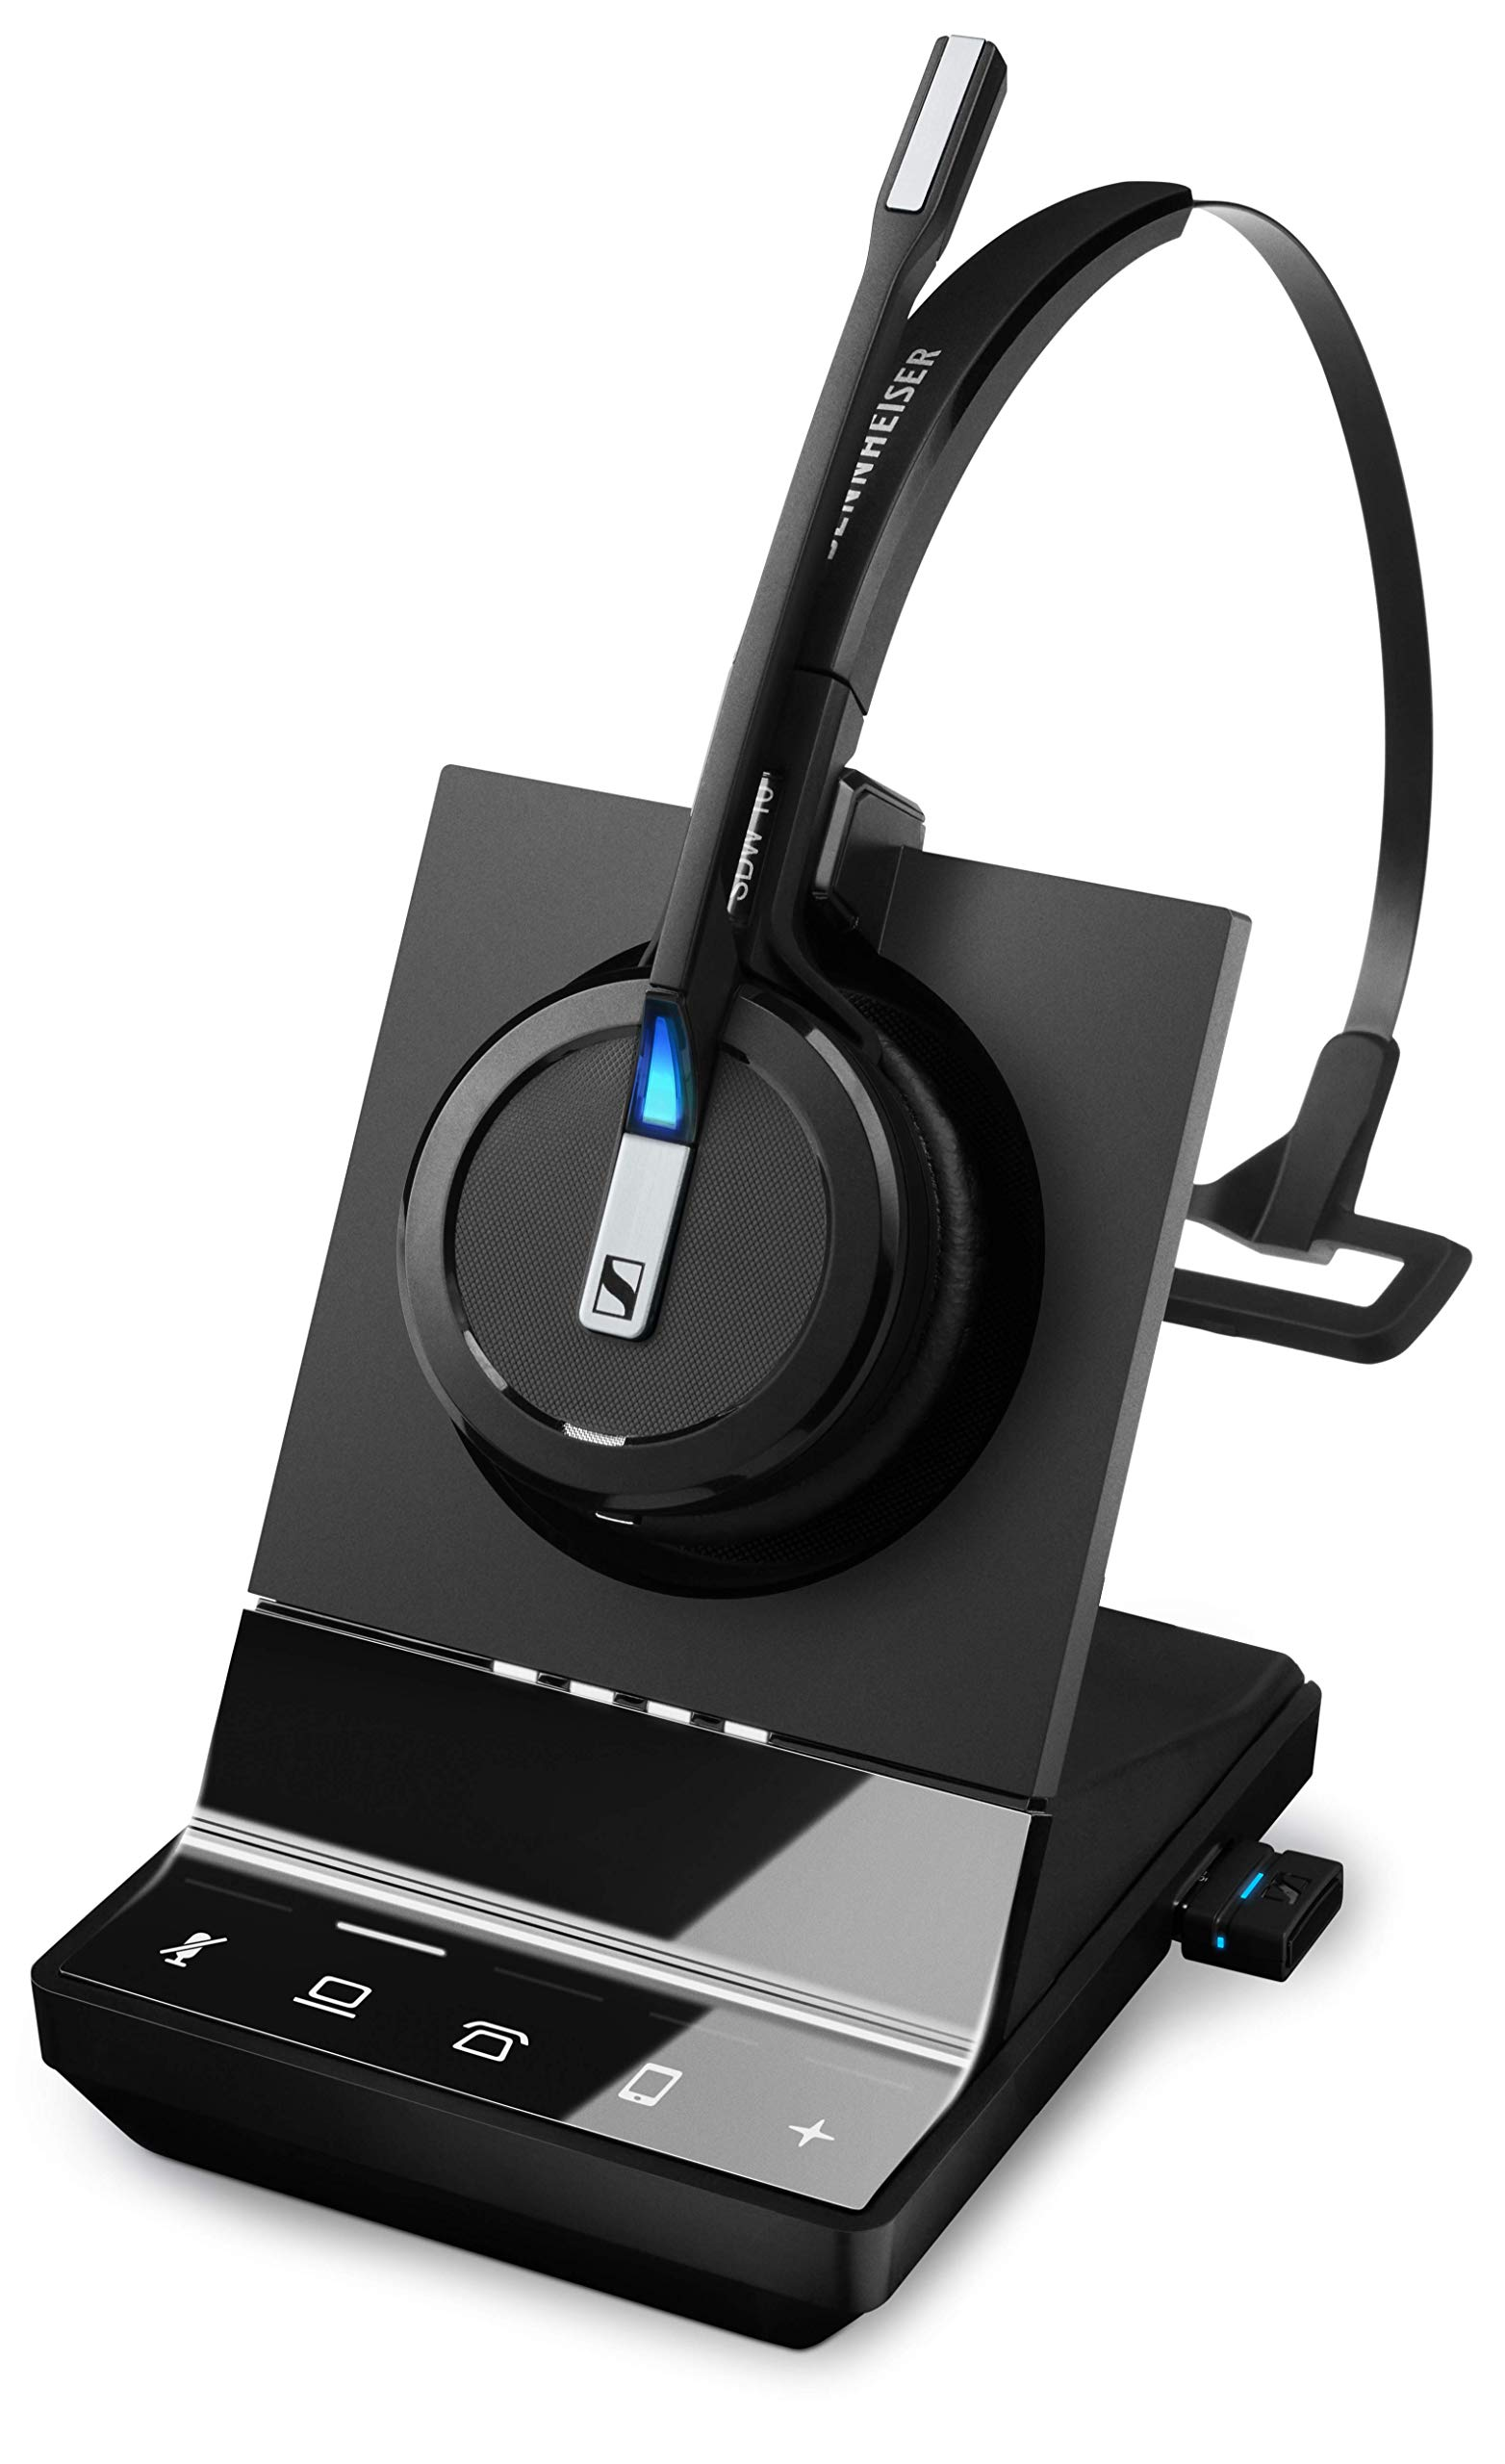 Sennheiser Enterprise Solution SDW 5016 Single-Sided Wireless DECT Headset for Desk Phone Softphone/PC& Mobile Phone Connection Dual Microphone Ultra Noise-Canceling, Black